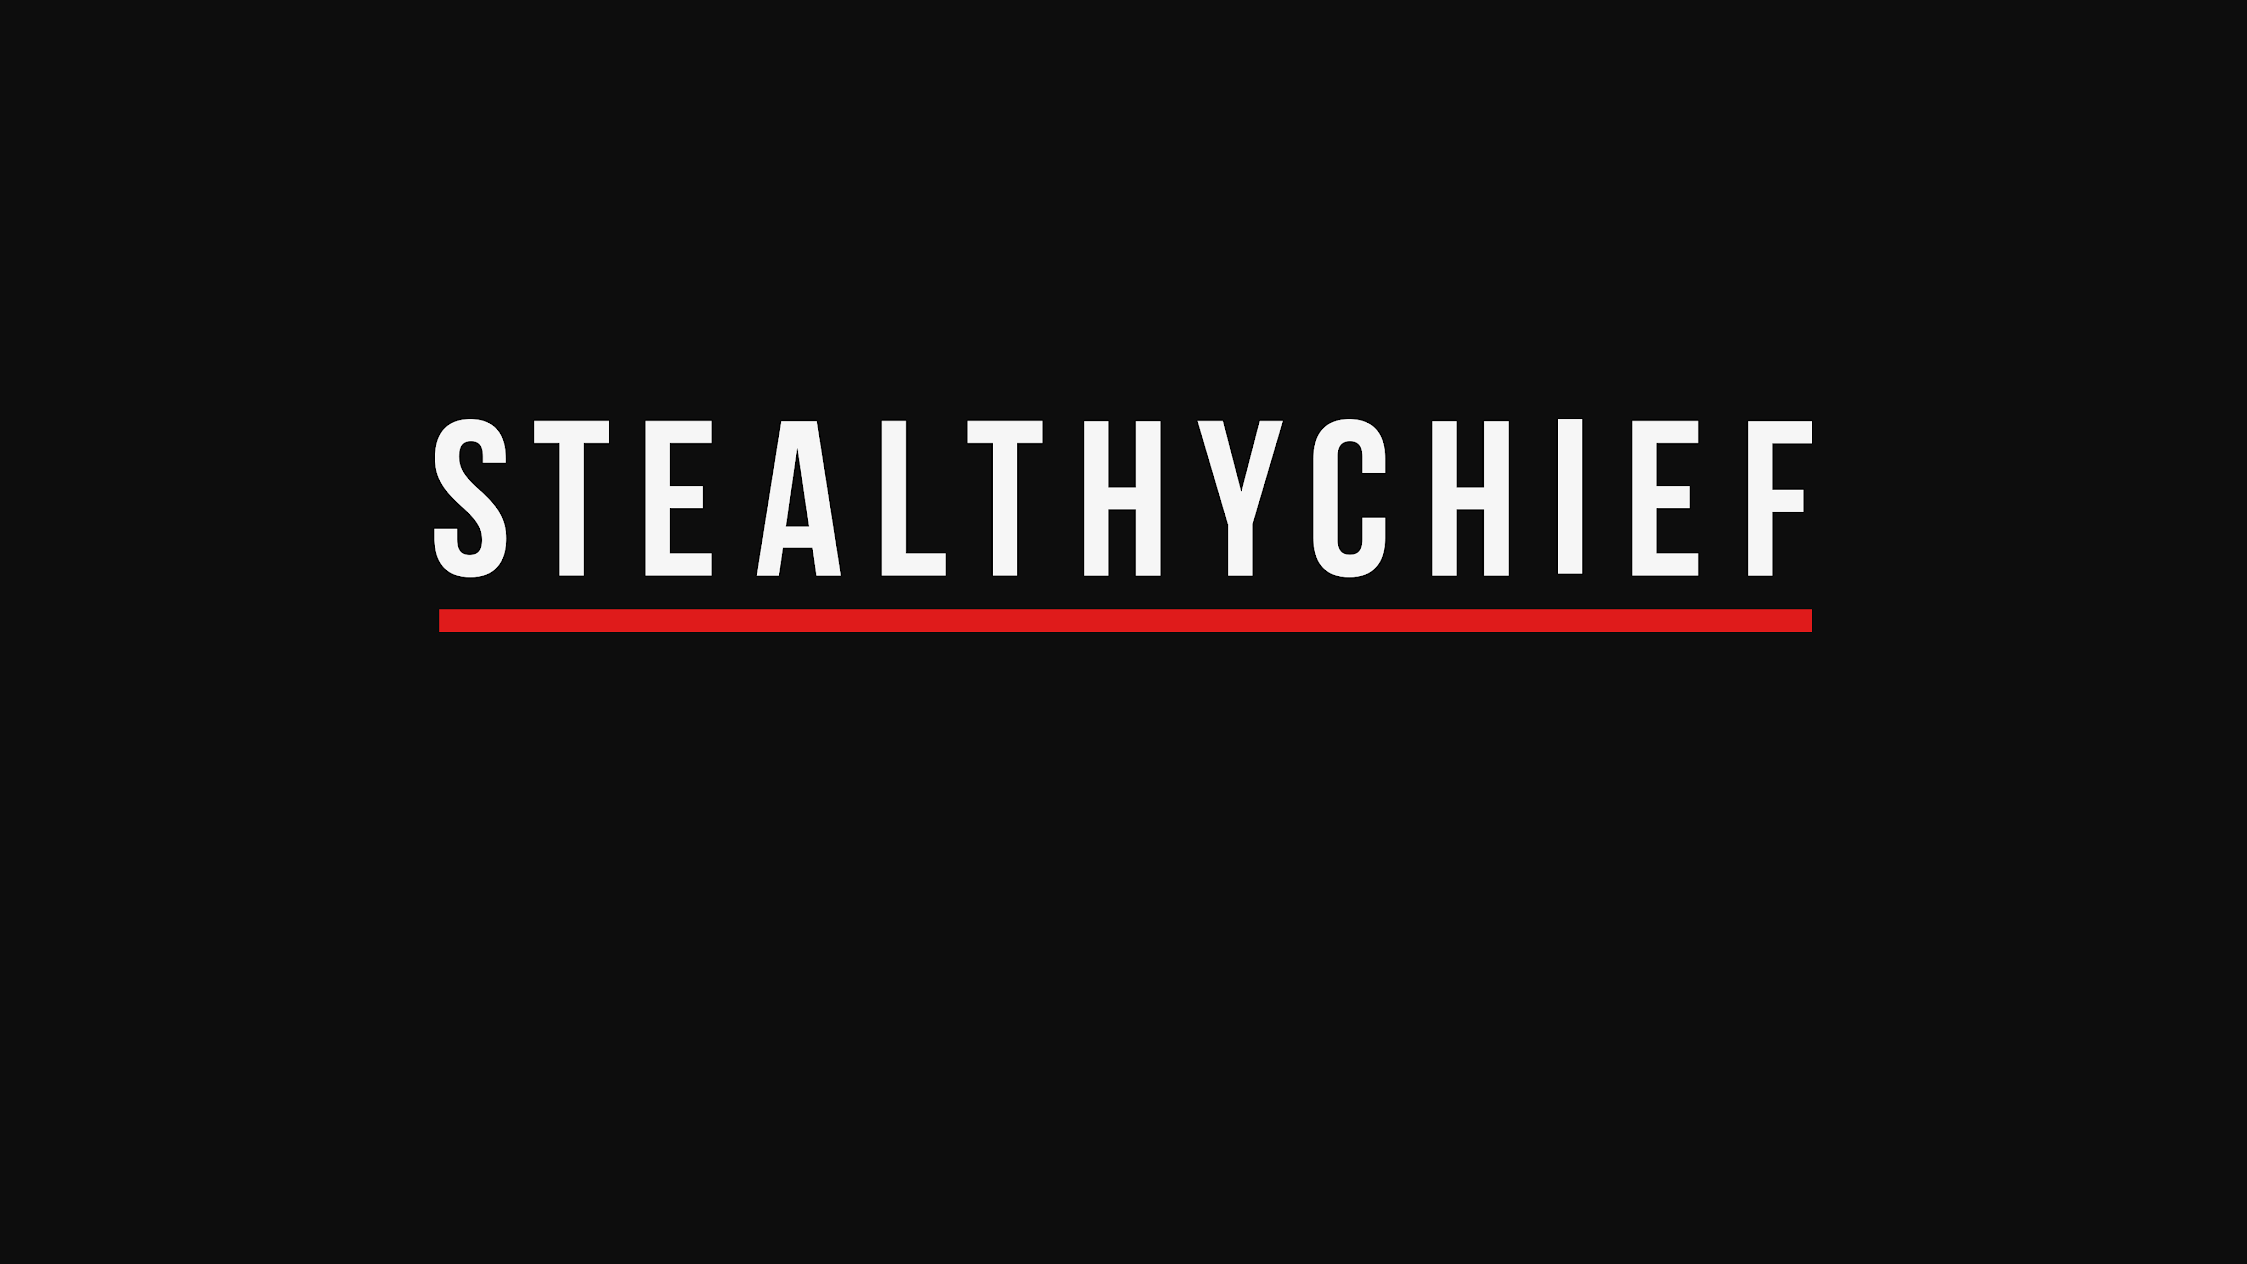 Stealthychief